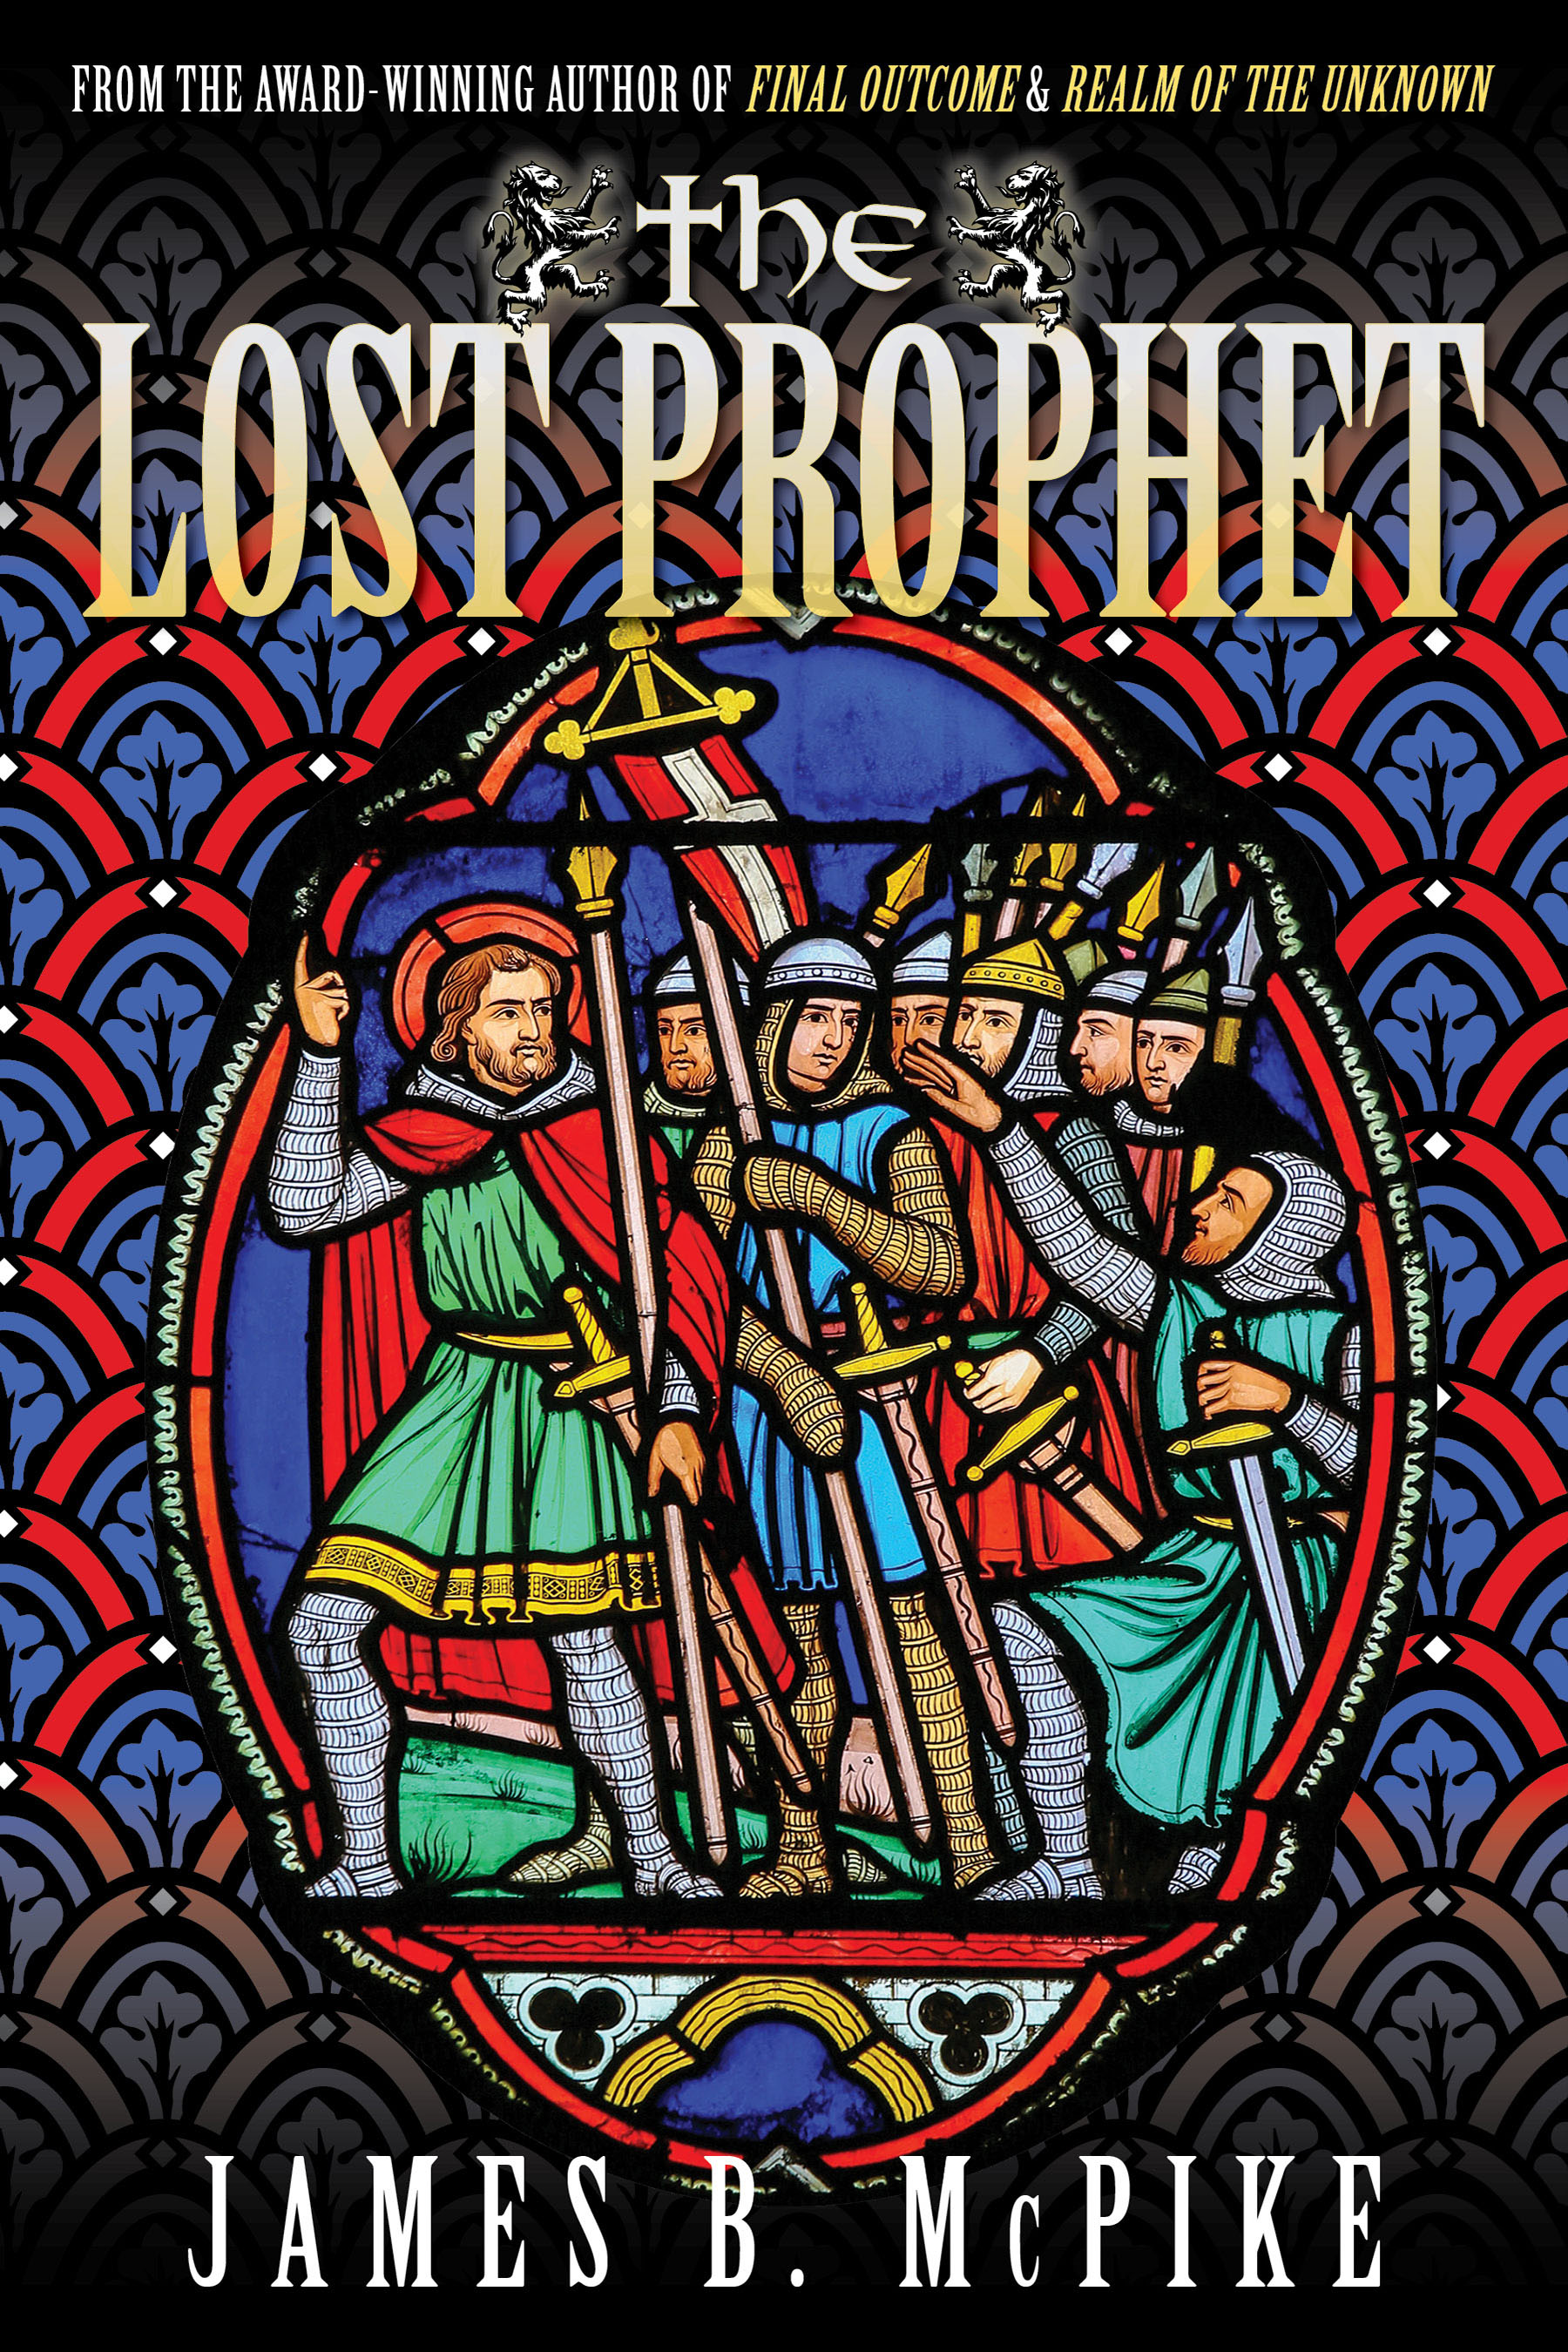 The Lost Prophet by James B. McPike